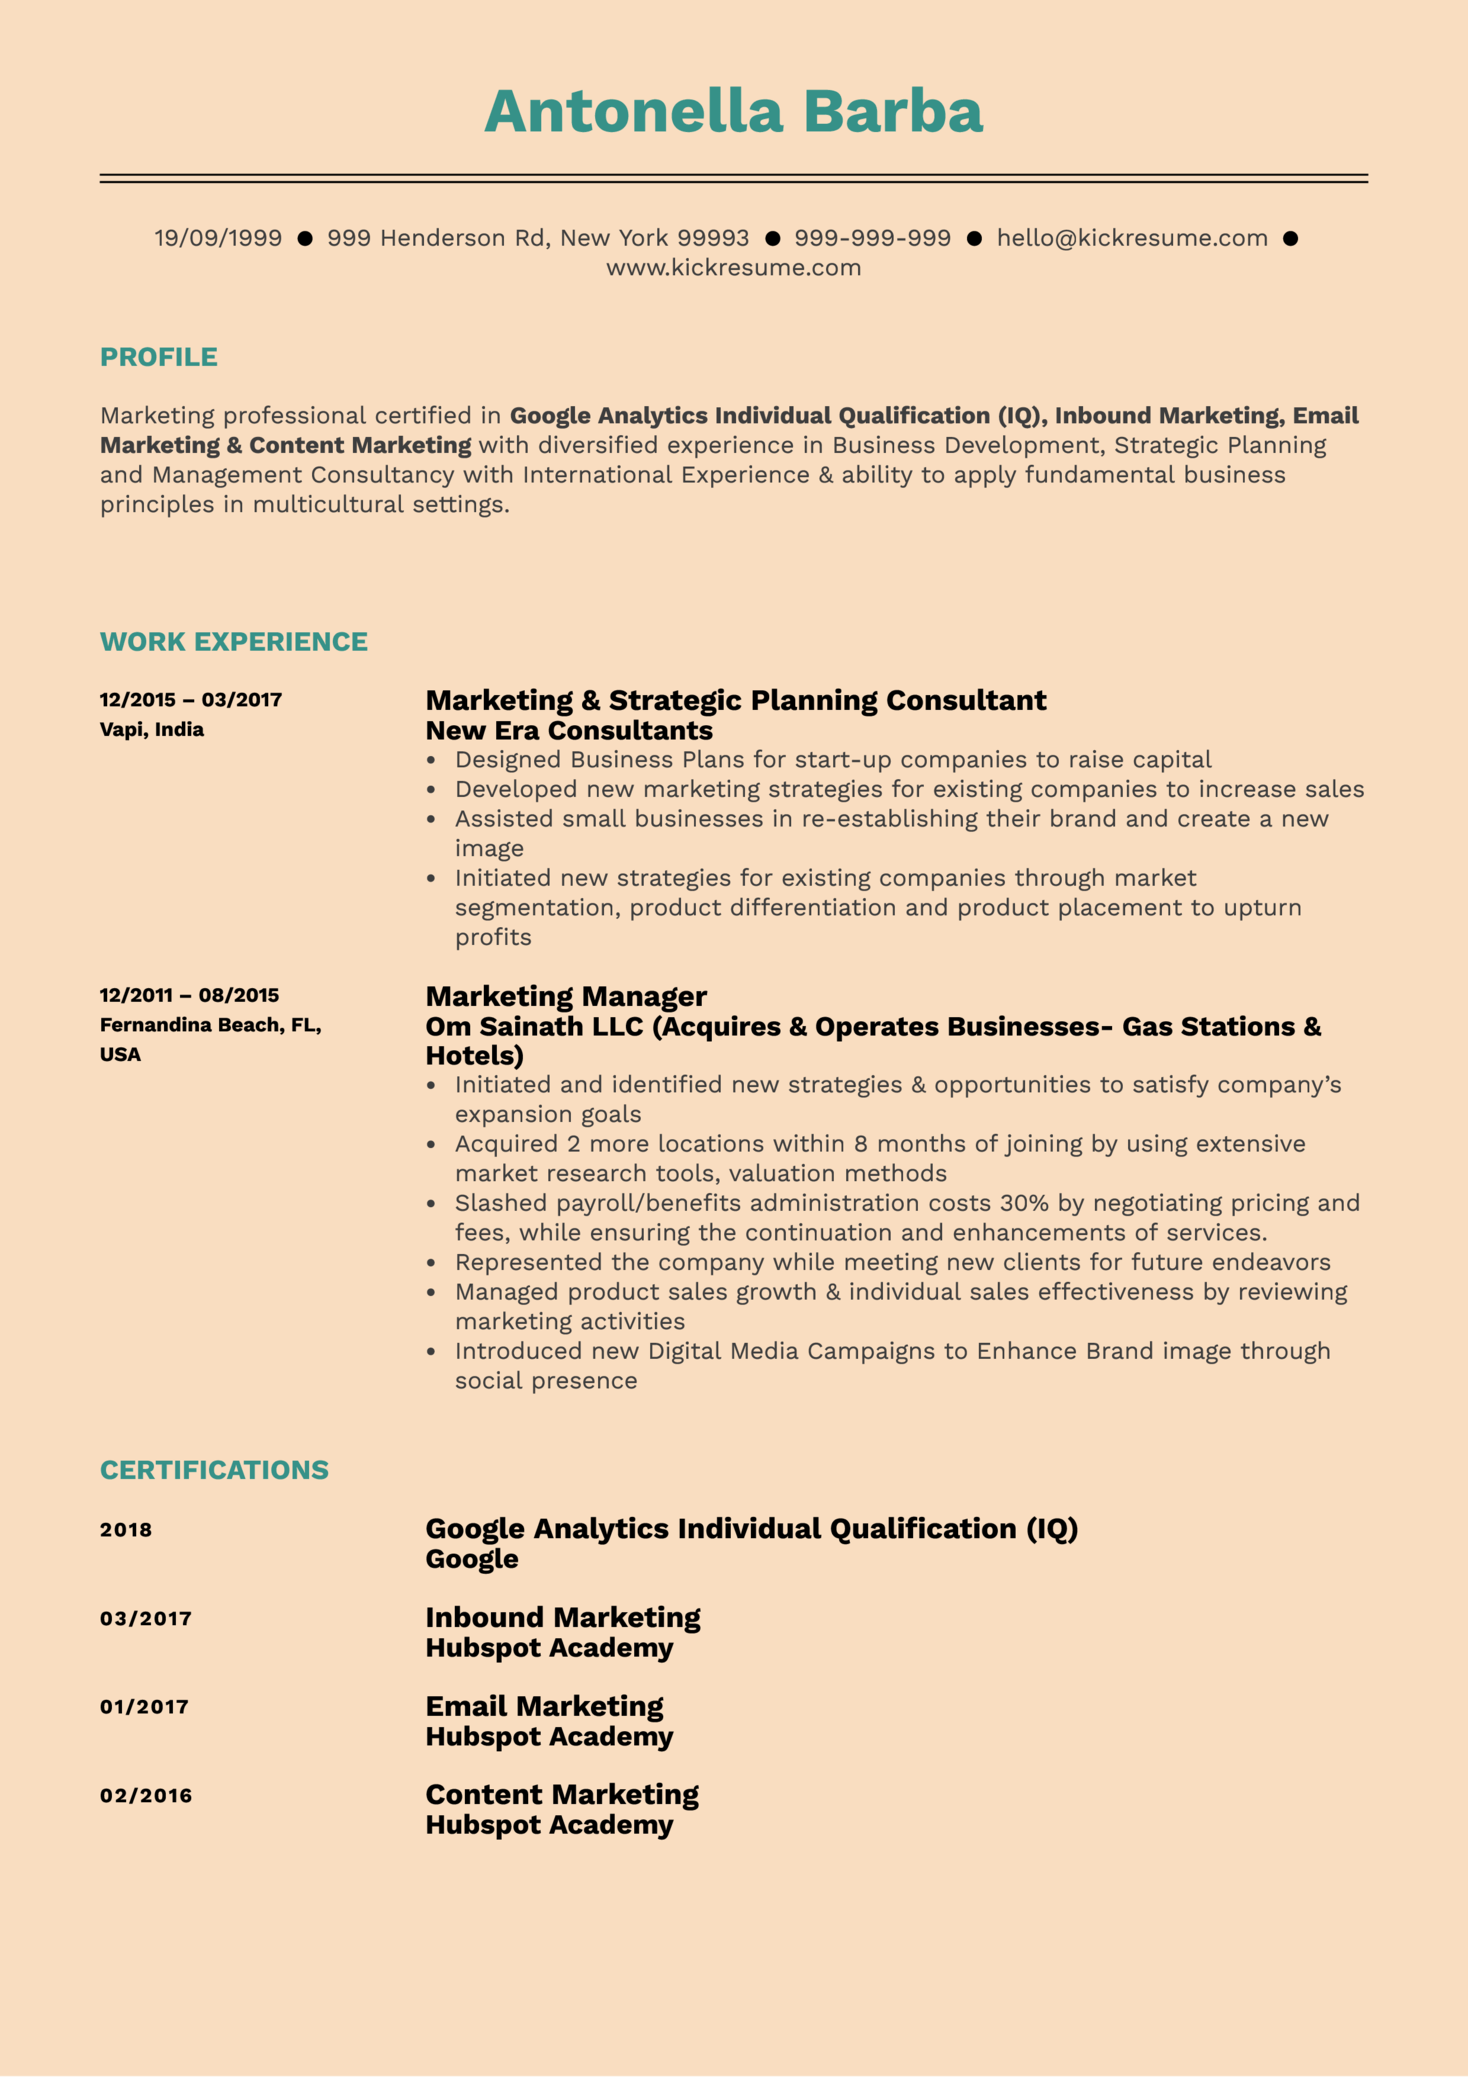 Brand Marketing Manager Resume Example (Part 1)